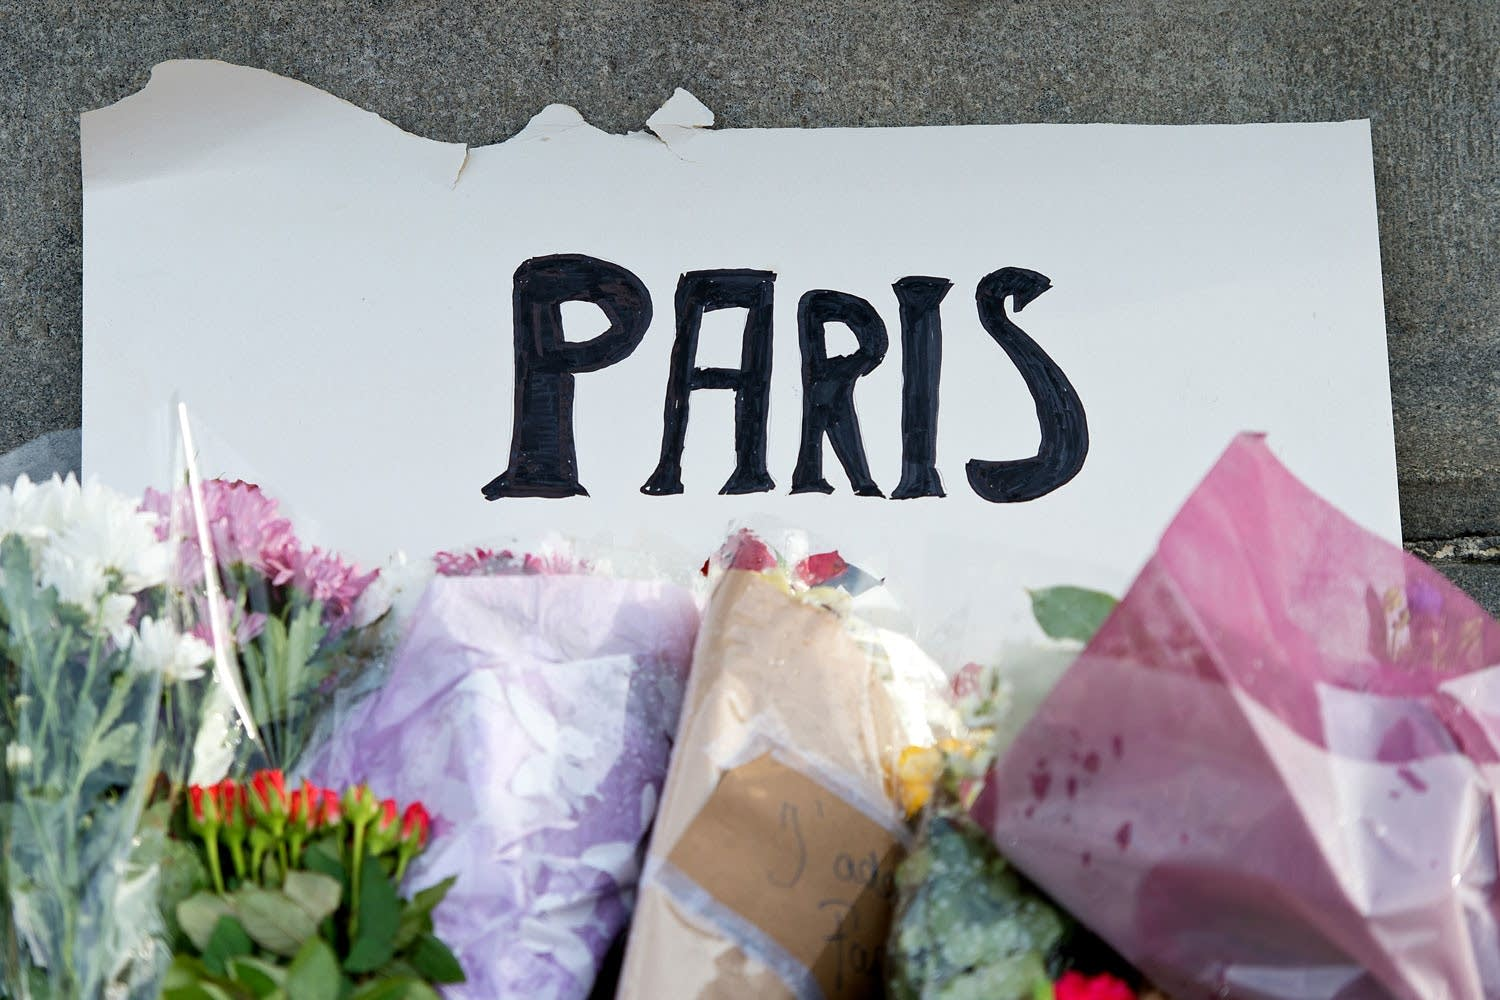 Londo French Community Grieves After Paris Attack